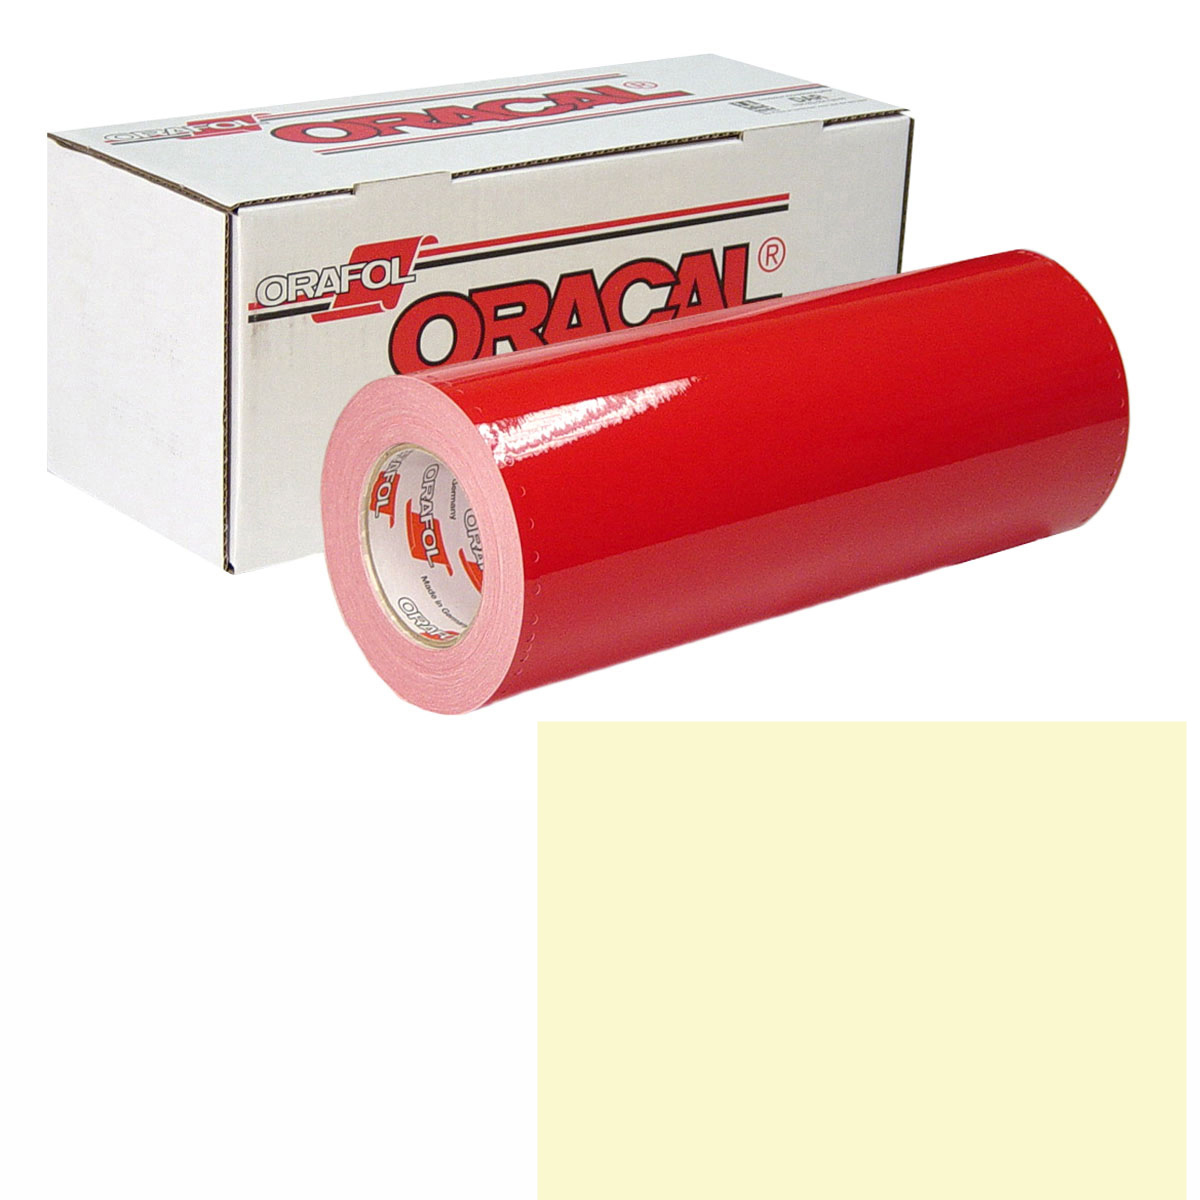 ORACAL 951 15In X 50Yd 804 Beige Brown